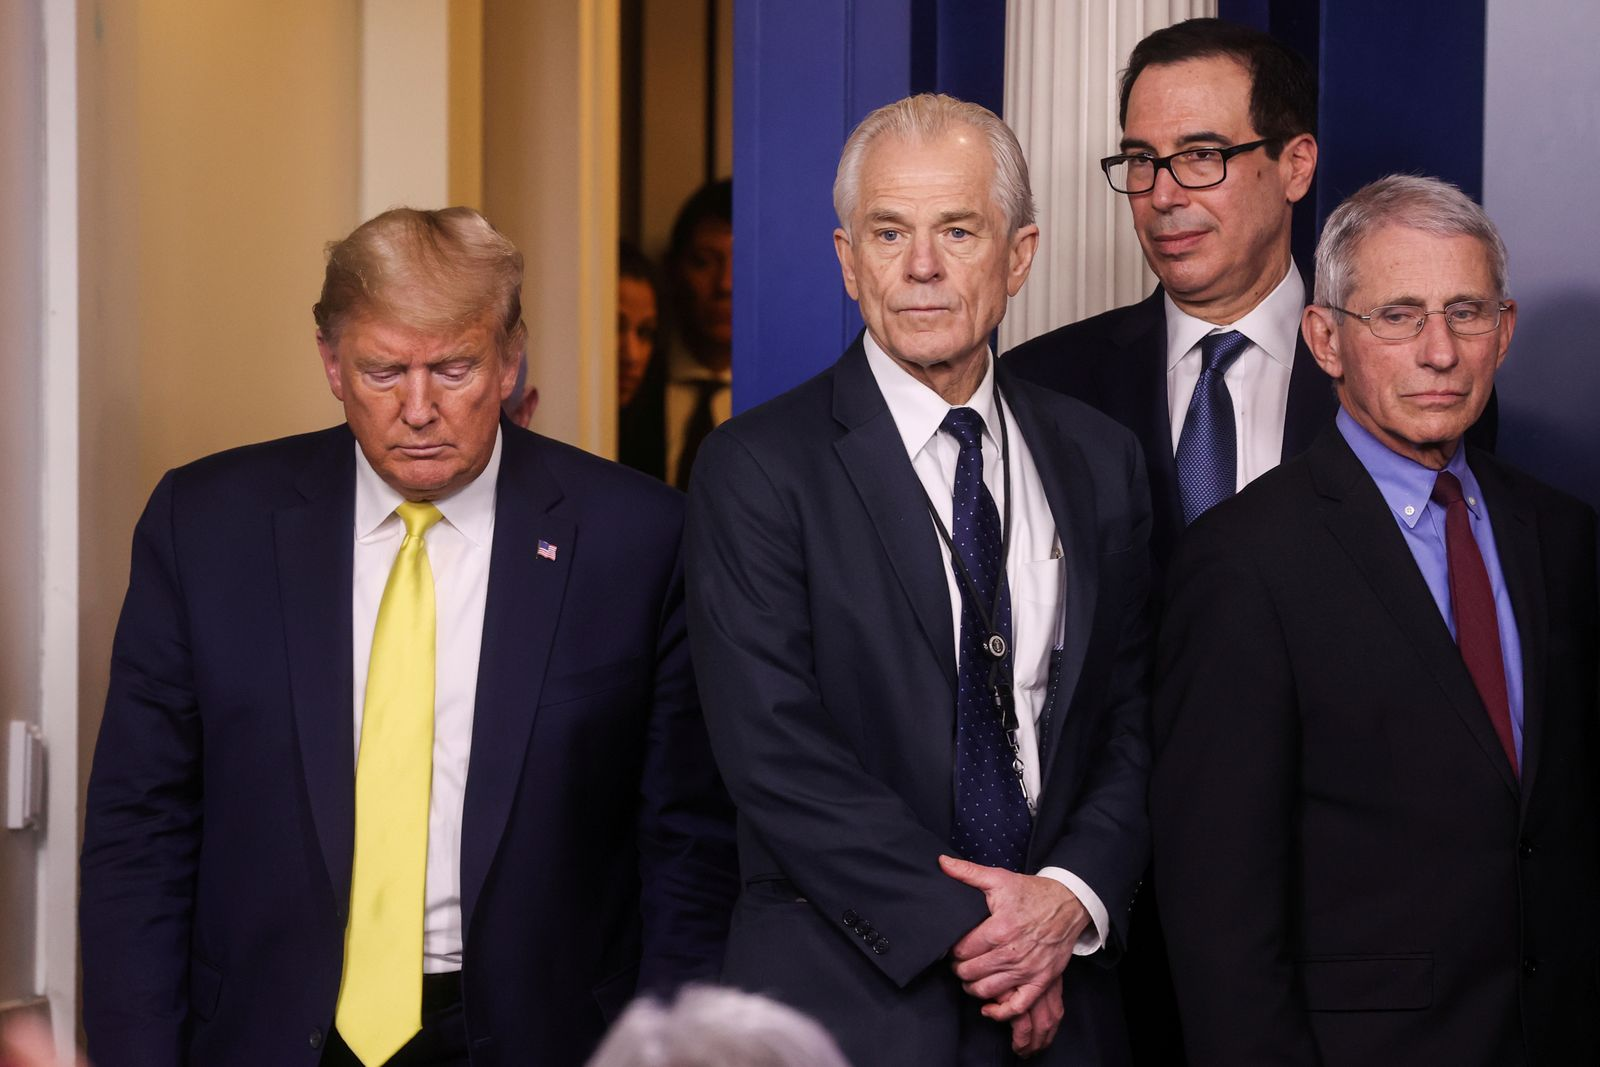 FILE PHOTO: U.S. President Donald Trump leads the daily Coronavirus-related briefing at the White House in Washington